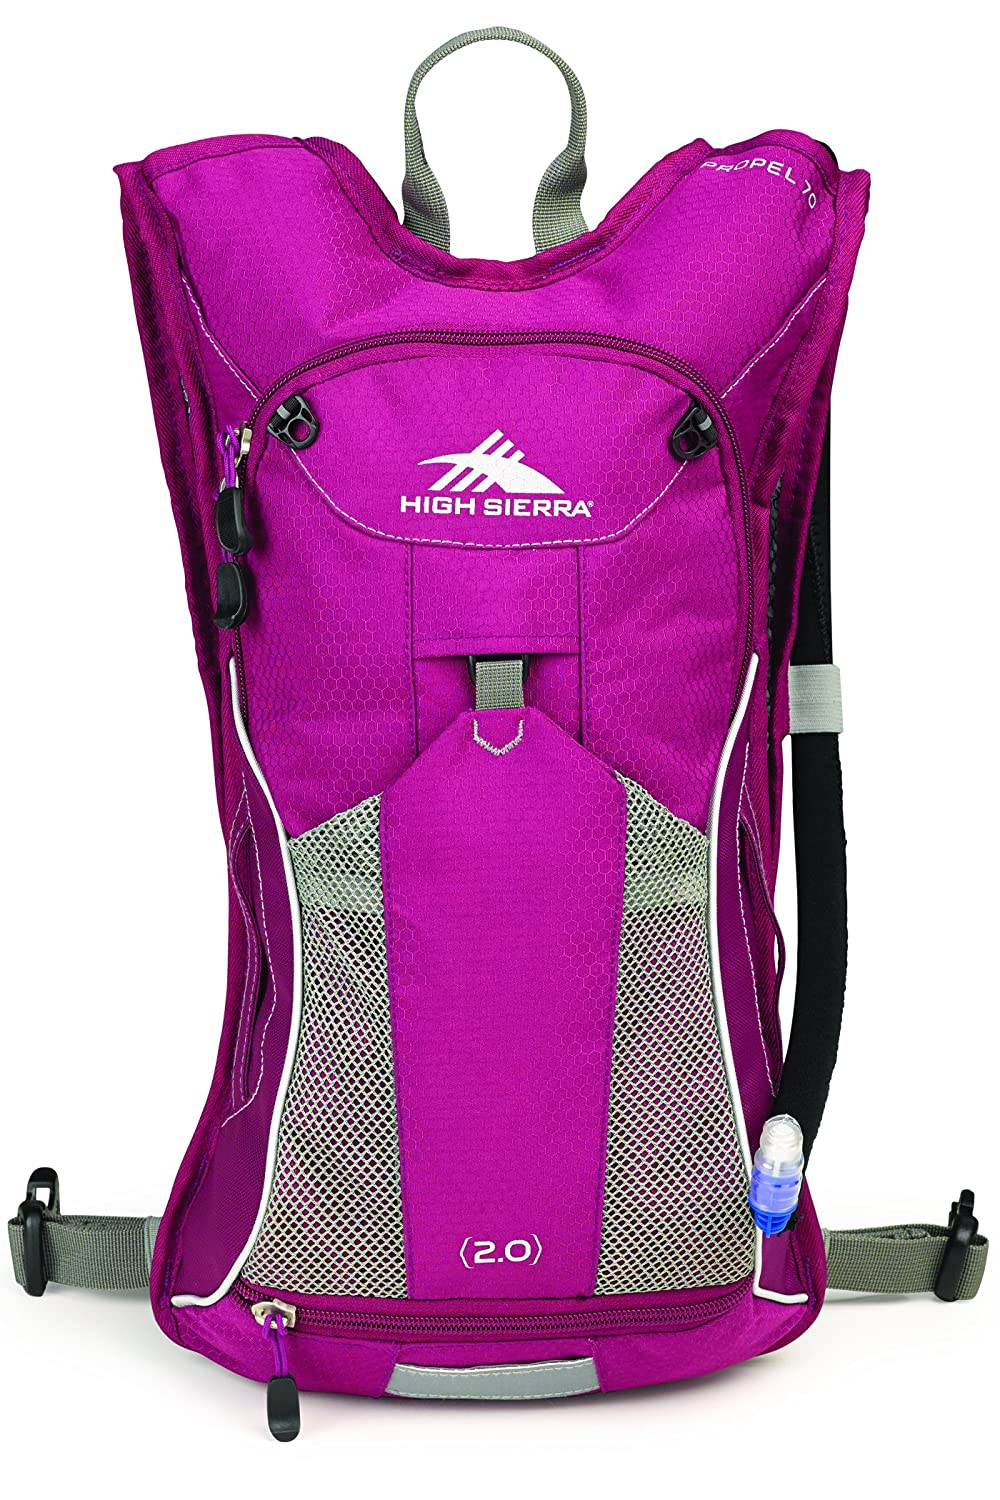 High Sierra Propel 70 Hydration Backpack review